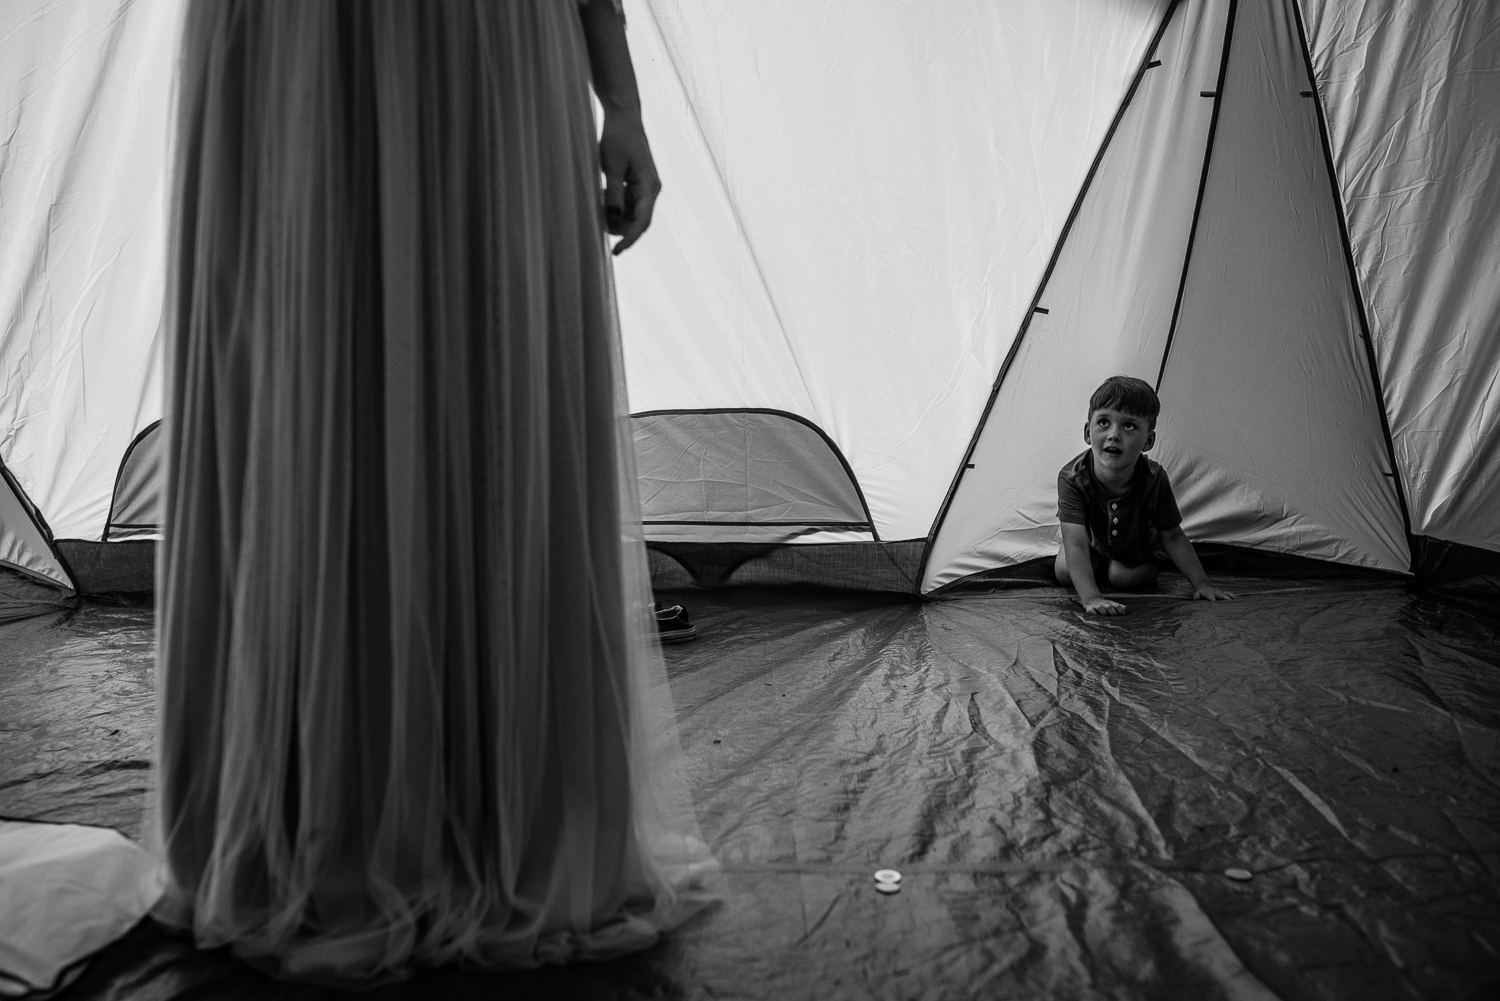 Mom getting into wedding dress as little boy watches from behind in a tent